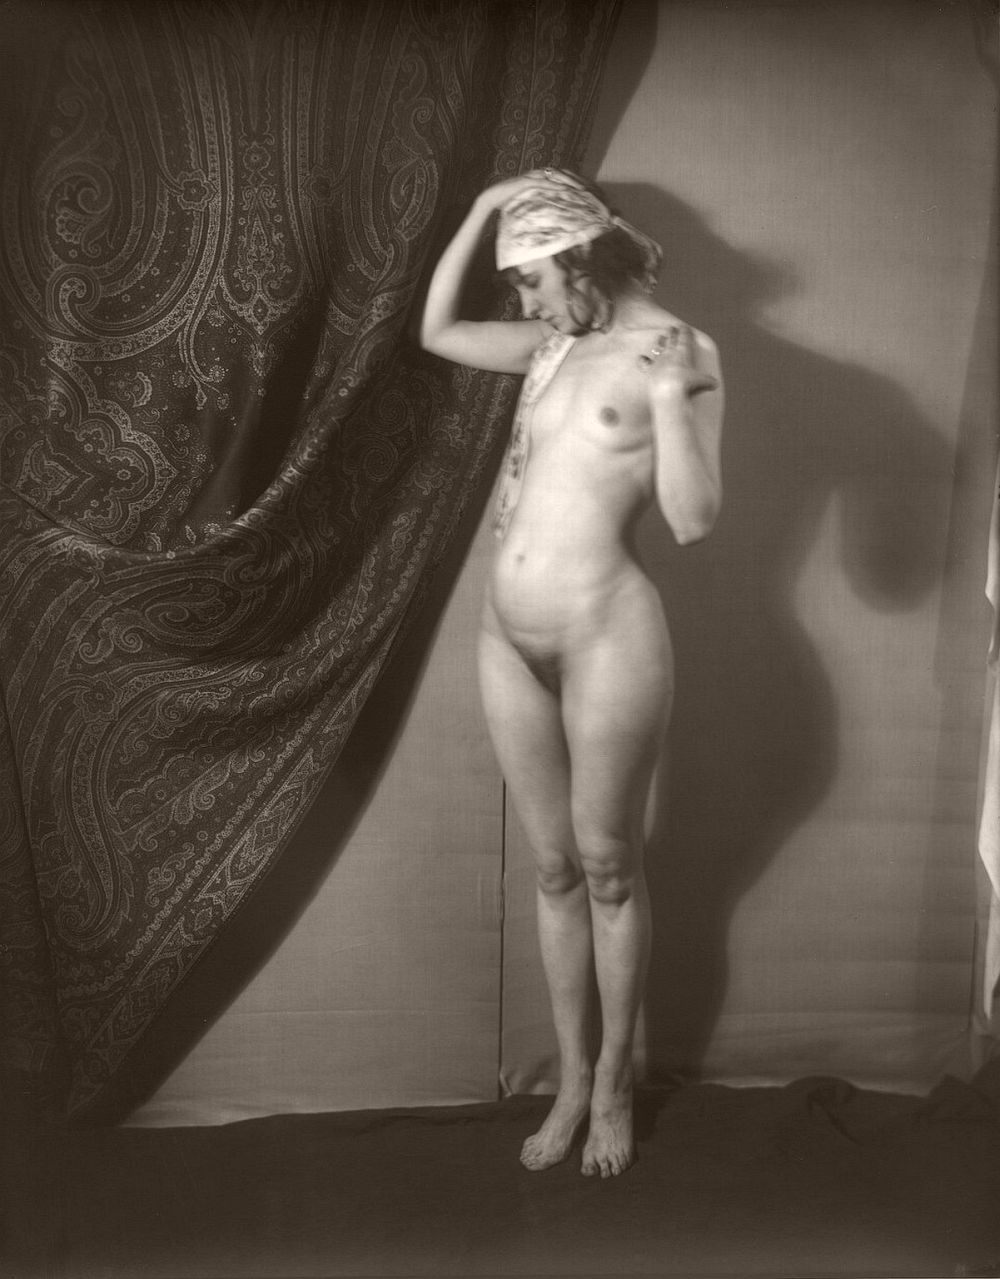 Seems me, ziegfeld girls nudes not torture